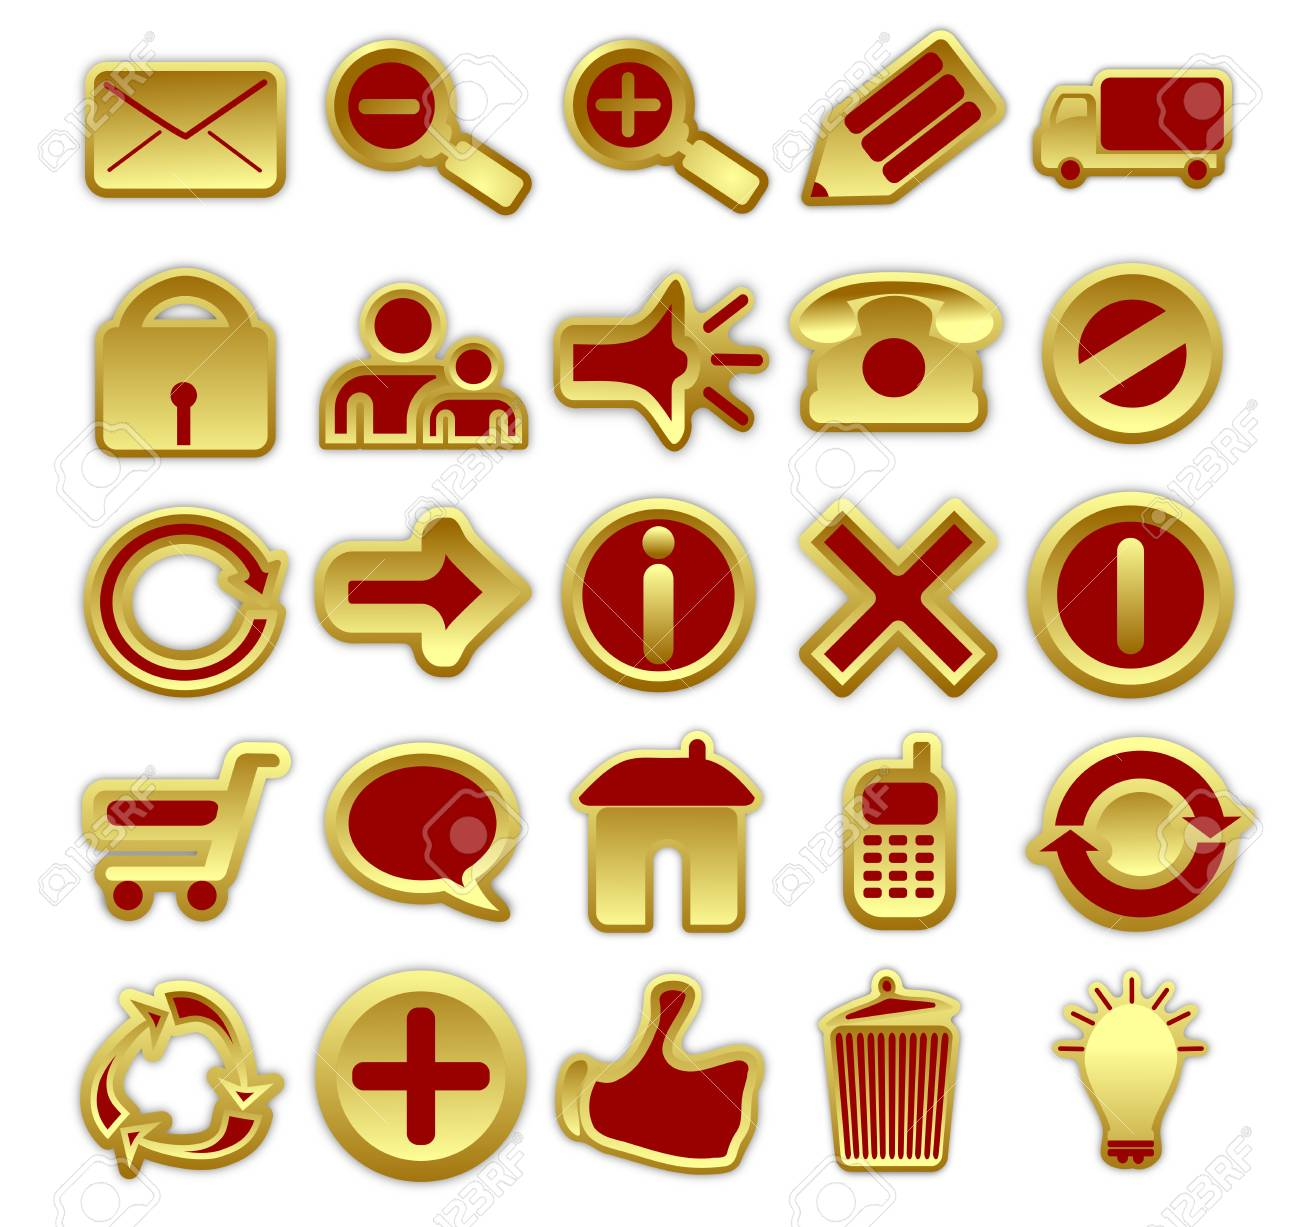 A collection of 25 web icons in golden and red color scheme Stock Photo - 17048828